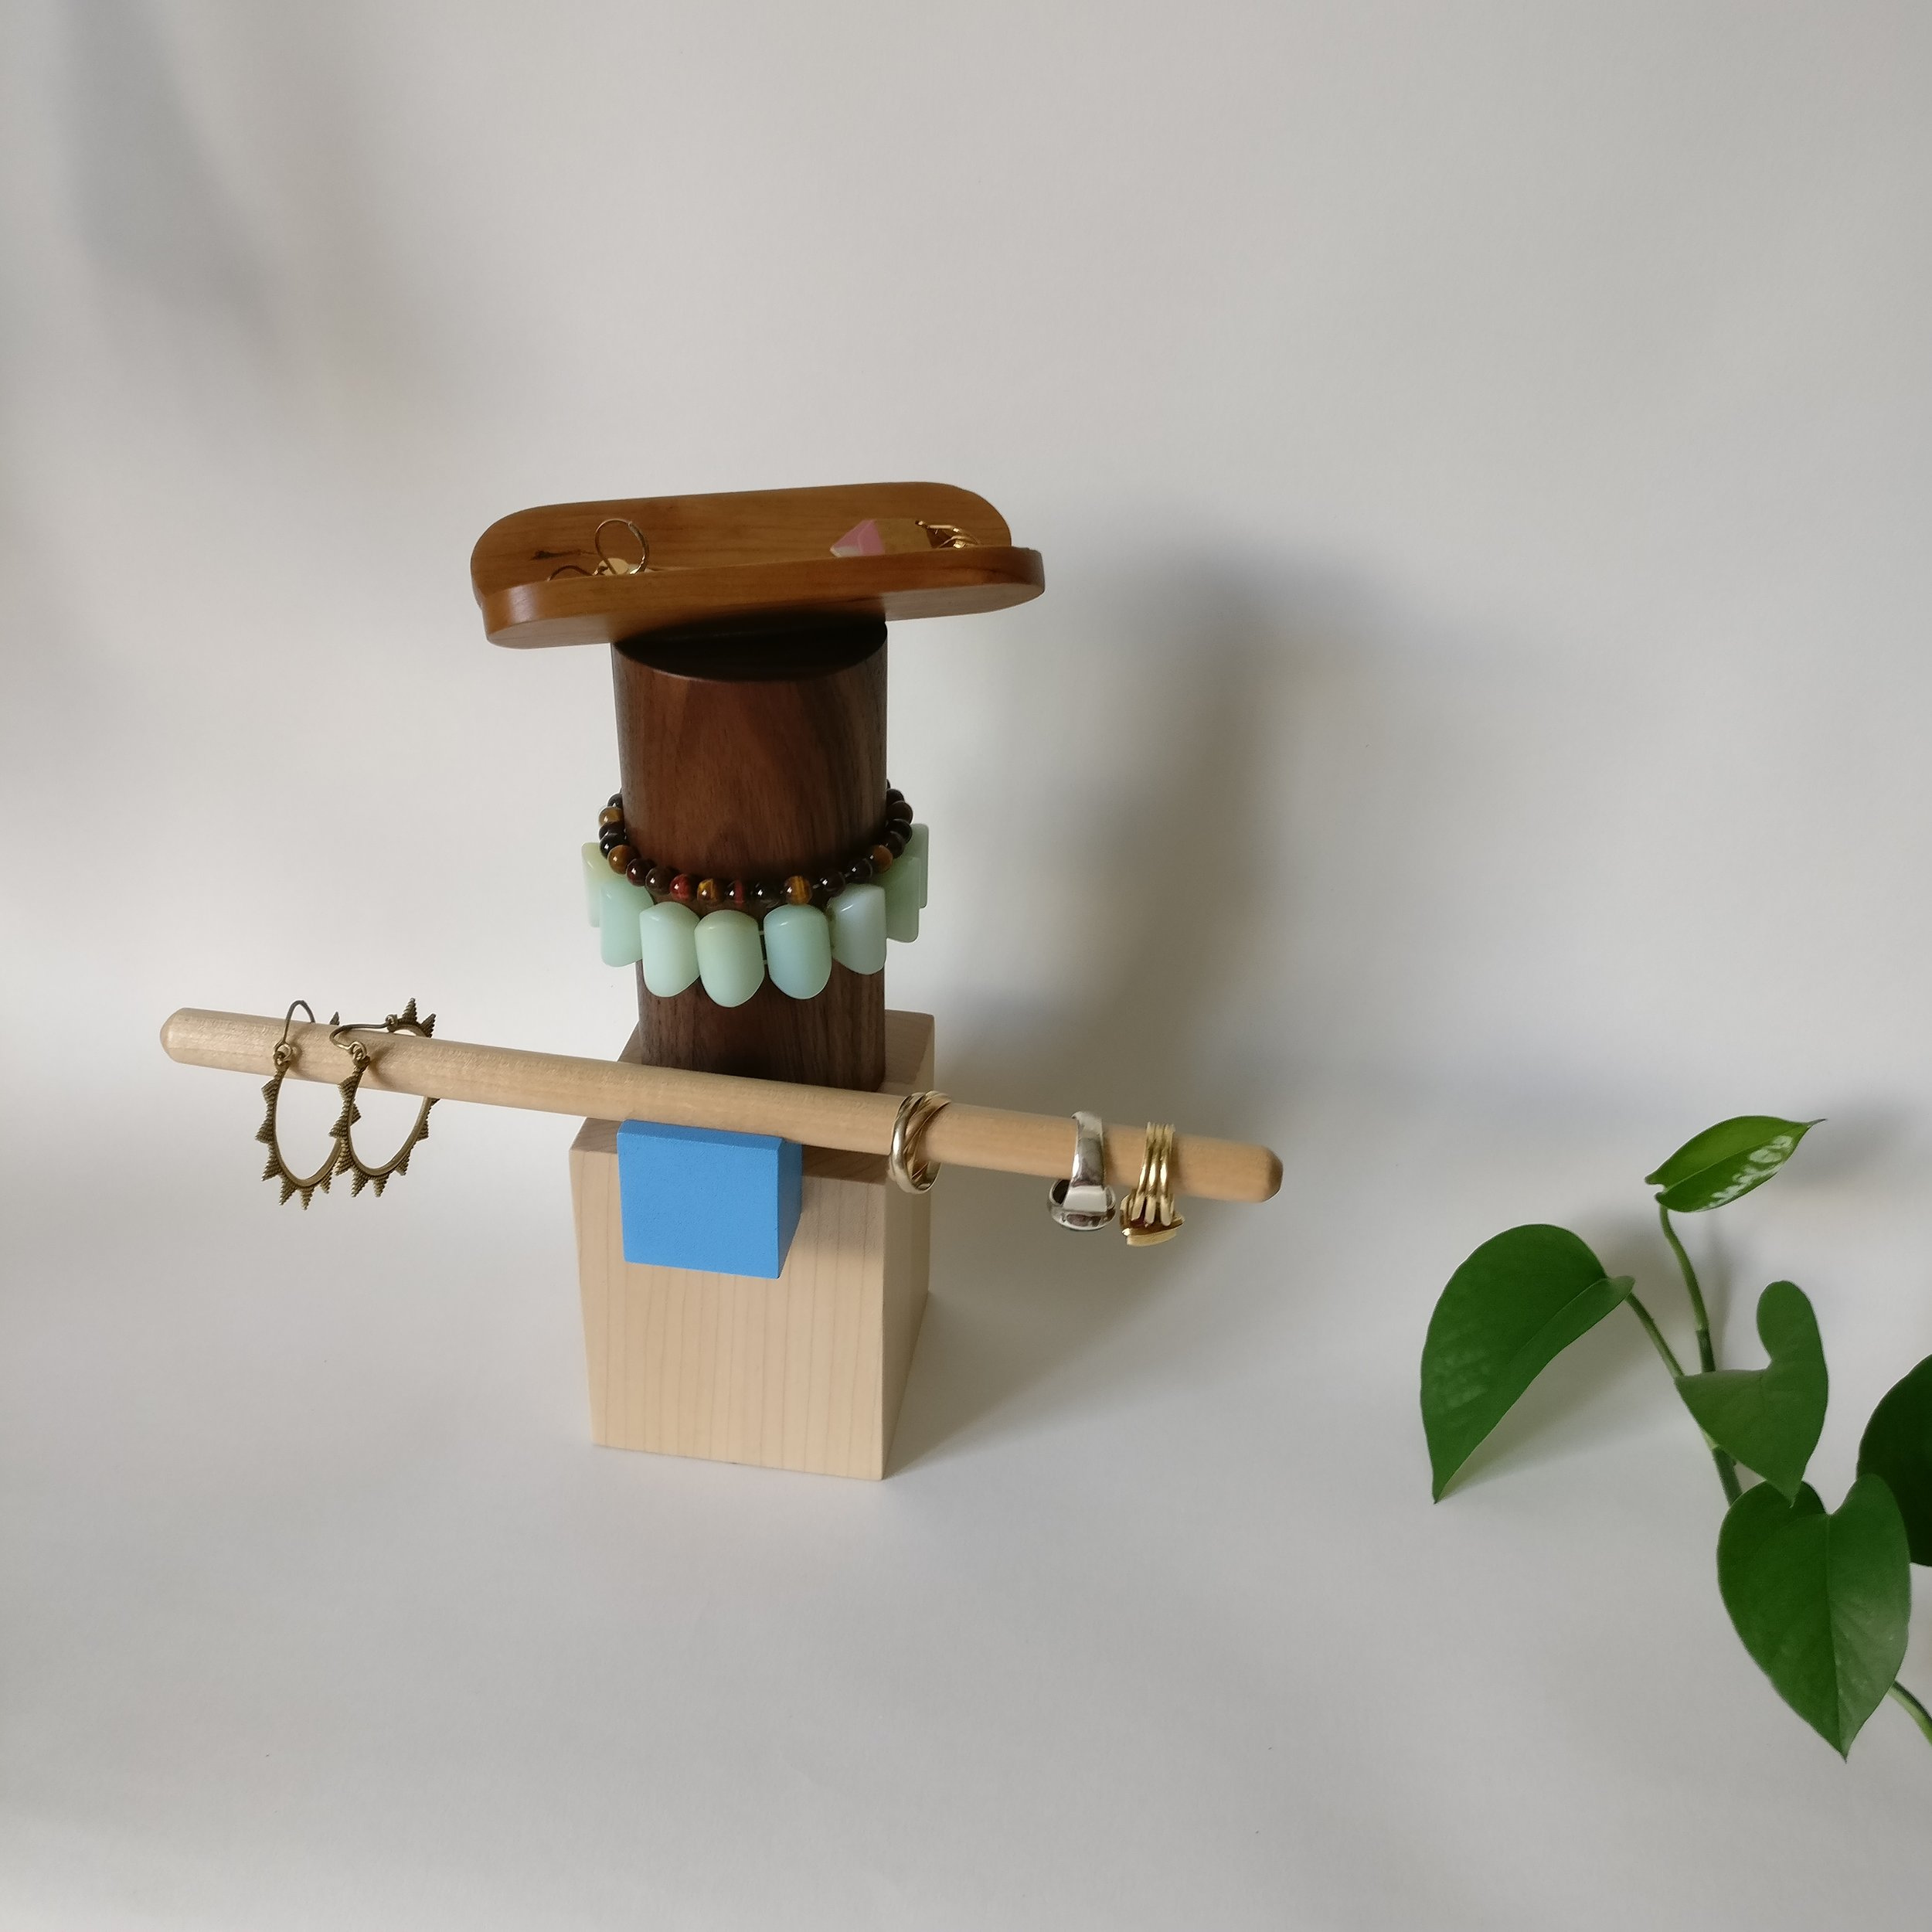 Jewelrt box, totem, wood, design, projet eight eight, projet huit huit, Myriam Rigaud, designer, memphis, geometric, hot dog blue